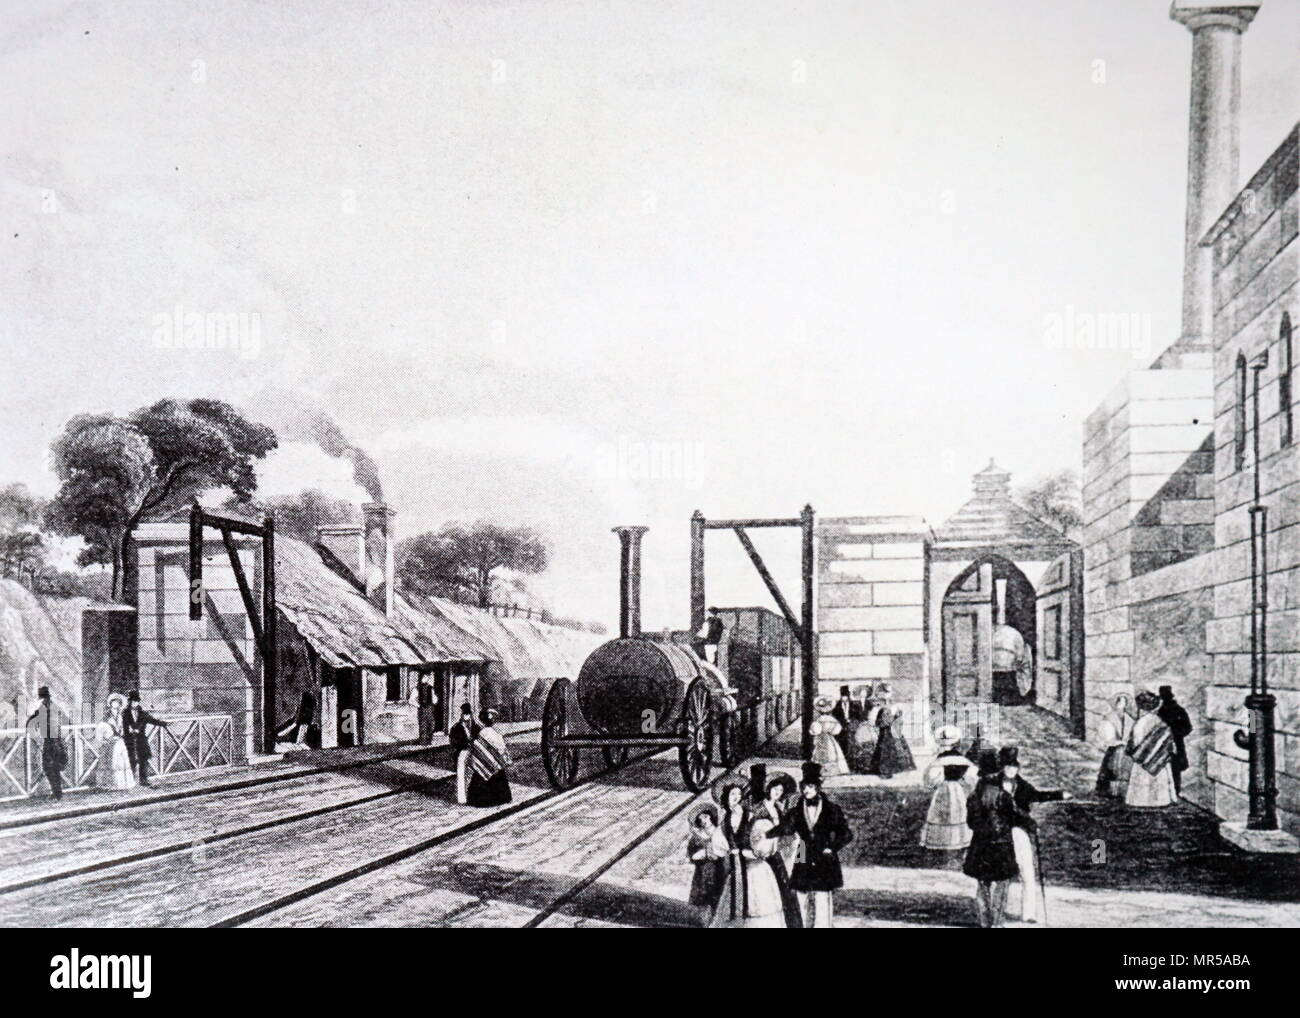 Engraving depicting the construction of the Liverpool-Manchester railway line. Dated 19th century - Stock Image